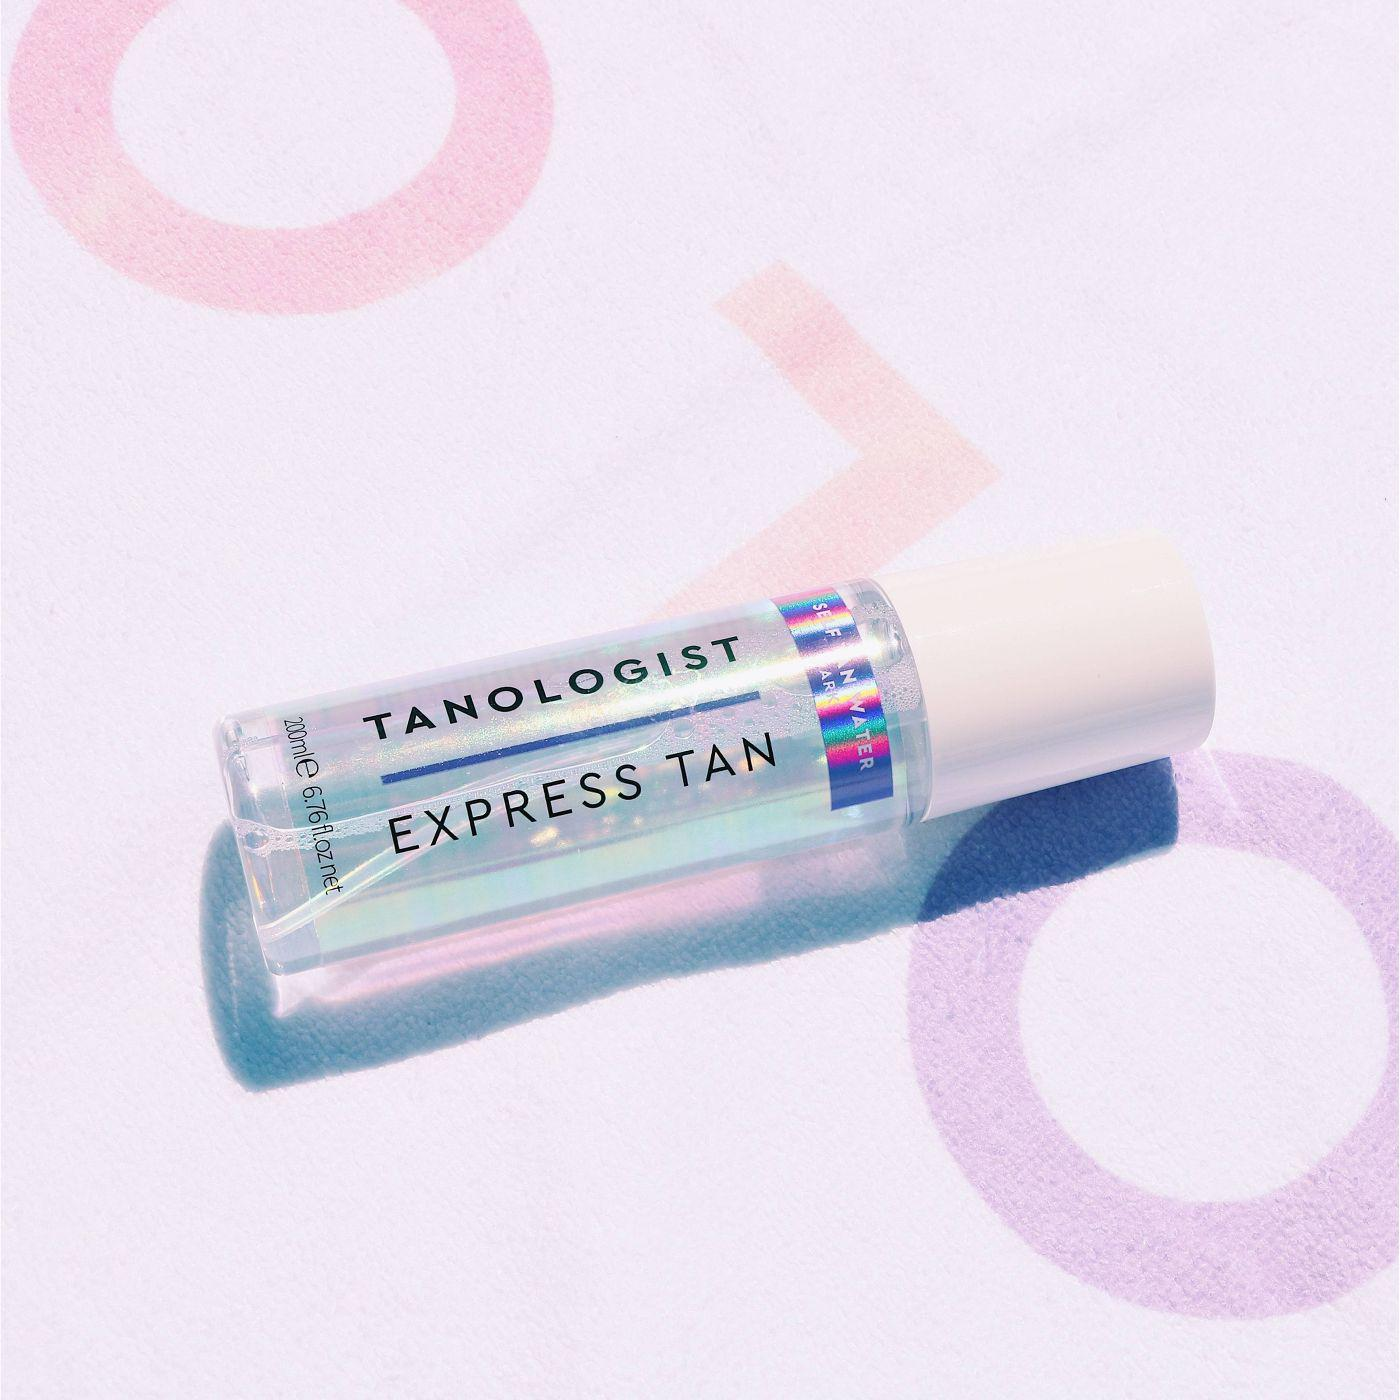 Tanologist Water Sunless Tanning Treatments